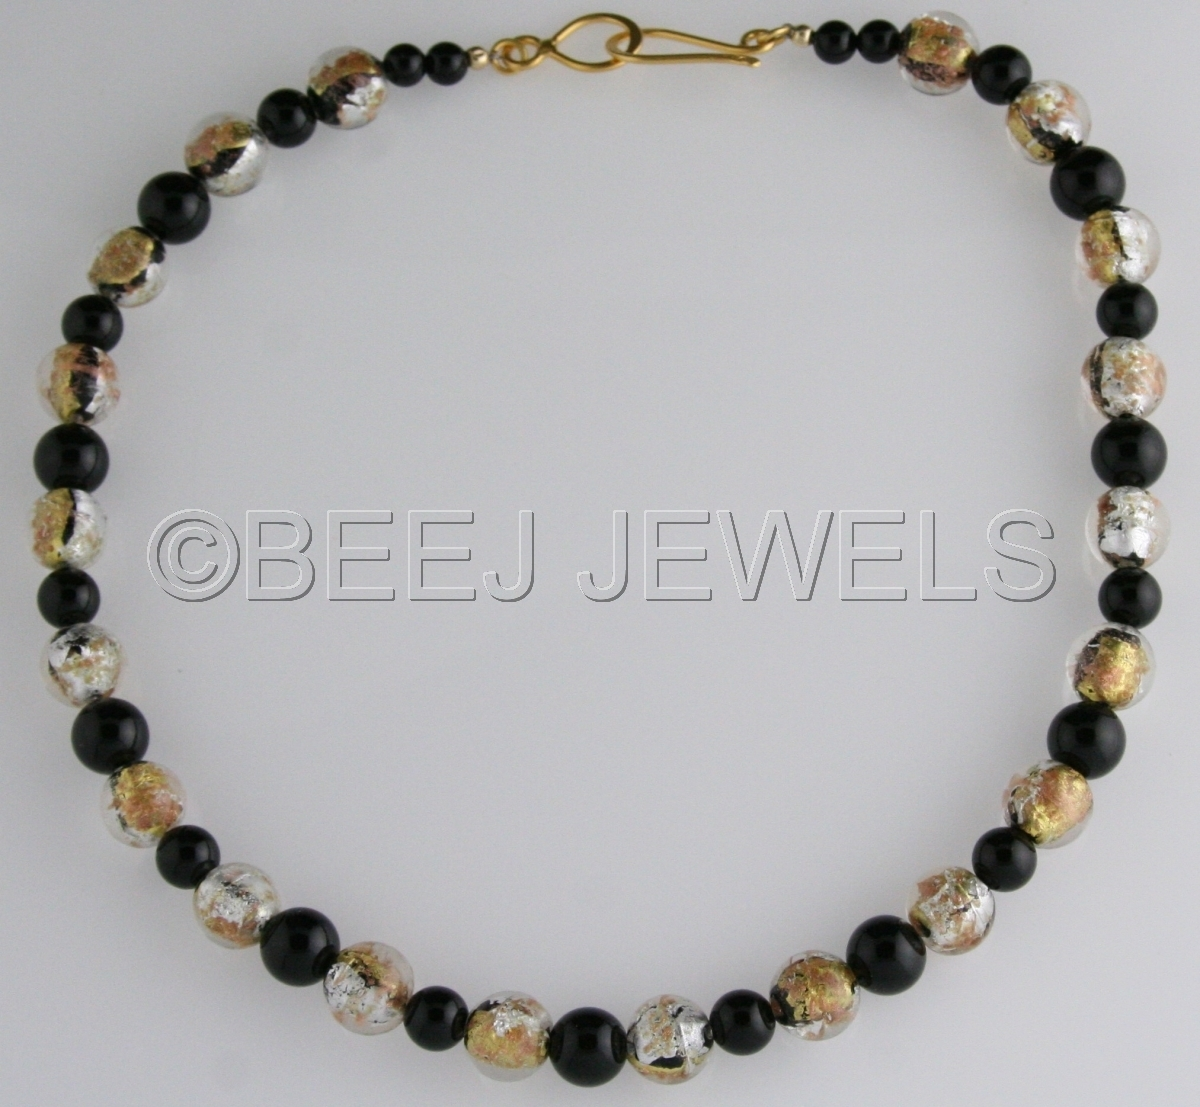 Gold, Silver, Black and Copper Foil Lampwork Beads With Black Onyx Necklace_ALSHAT (large view)